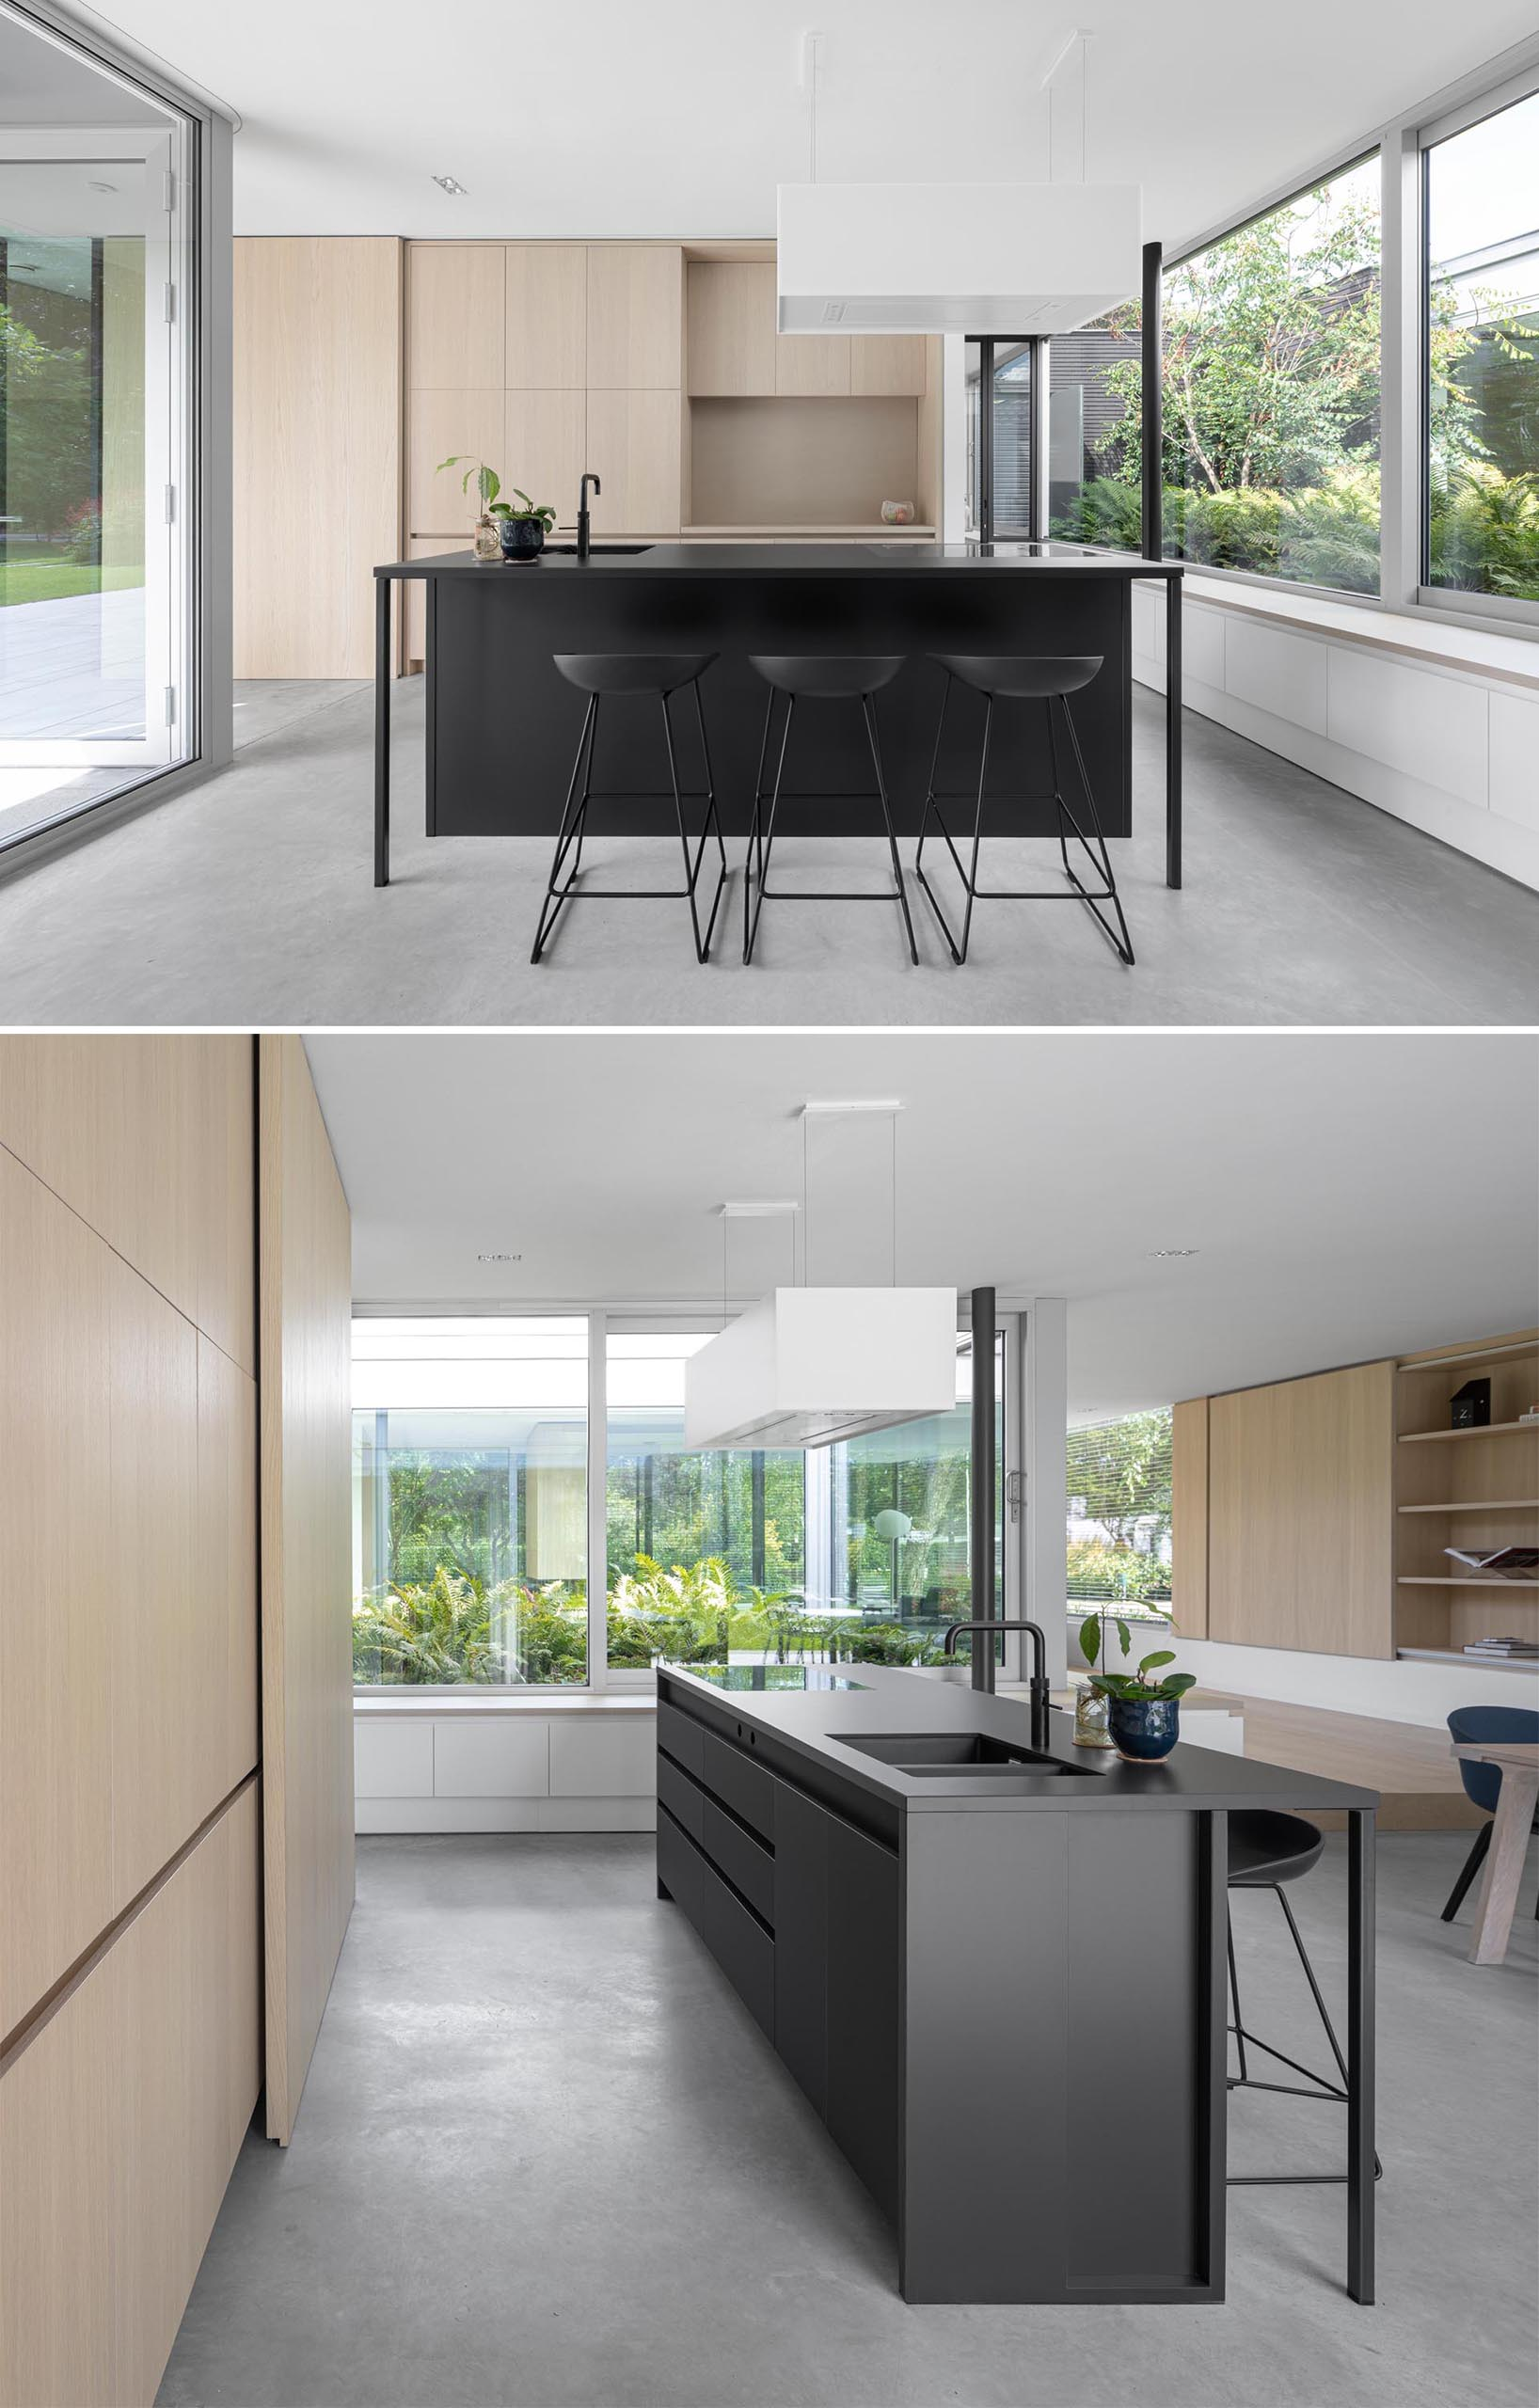 A modern kitchen with minimalist wood cabinets, a matte black island with matching stools, and concrete floors.